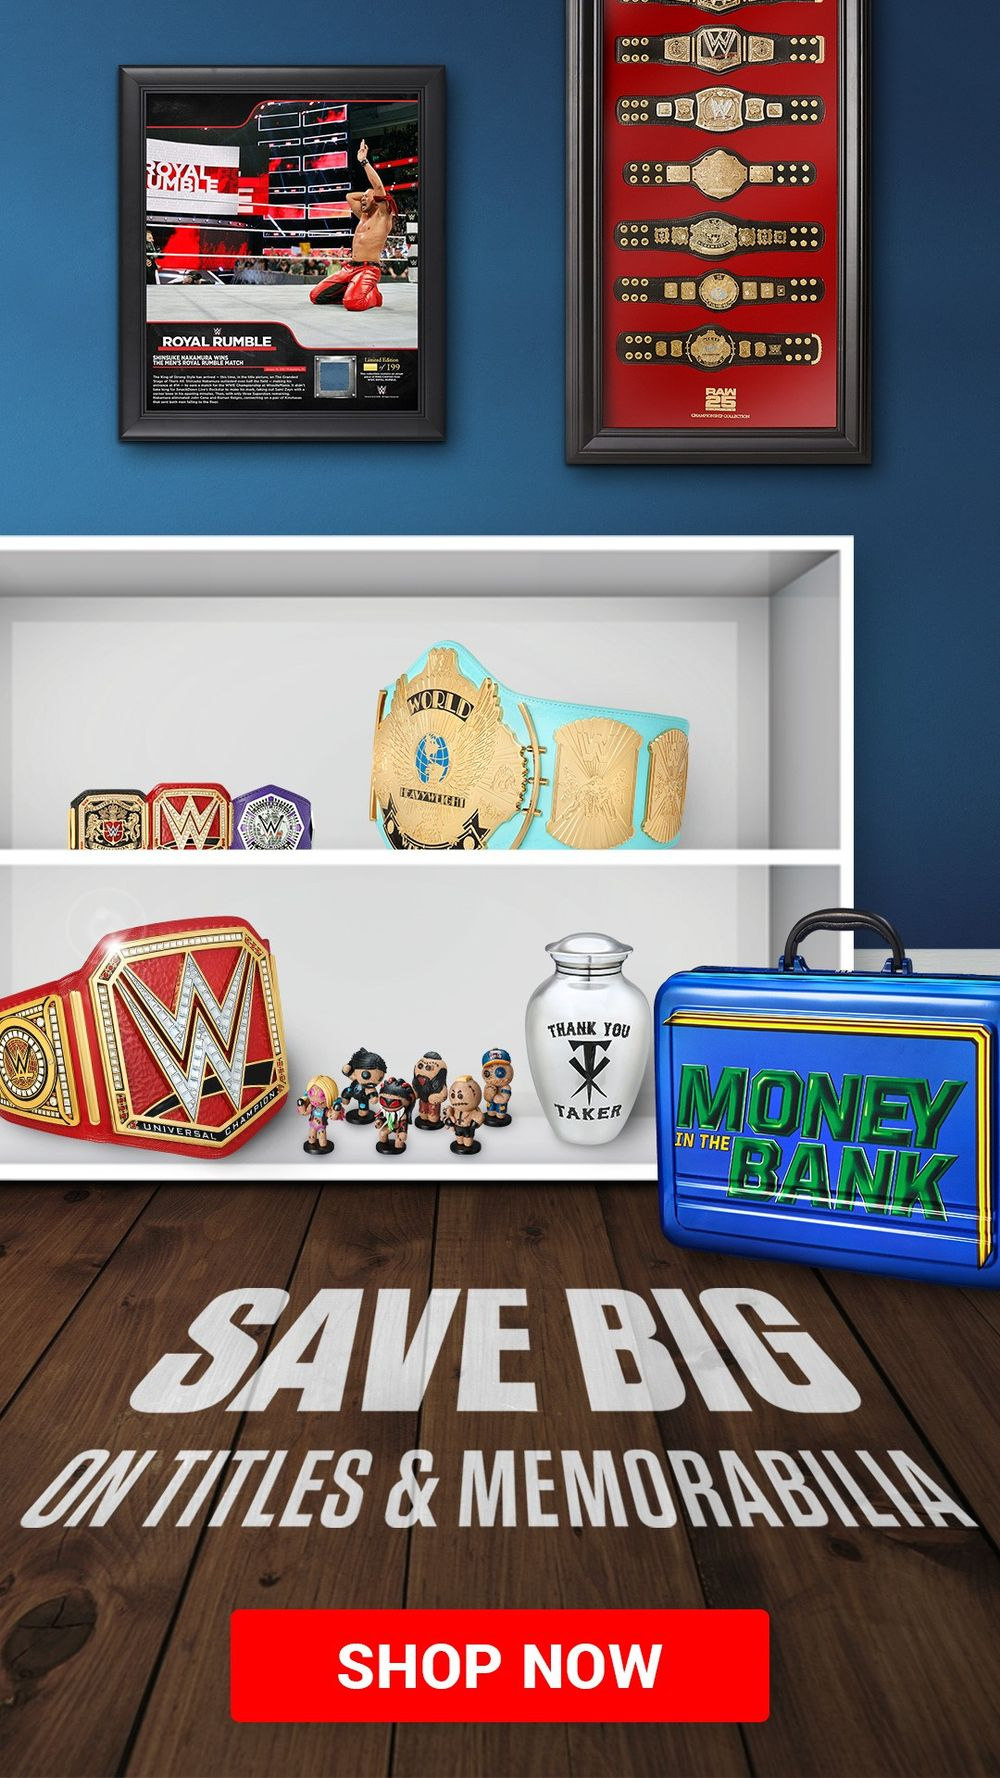 Save BIG on titles & memorabilia